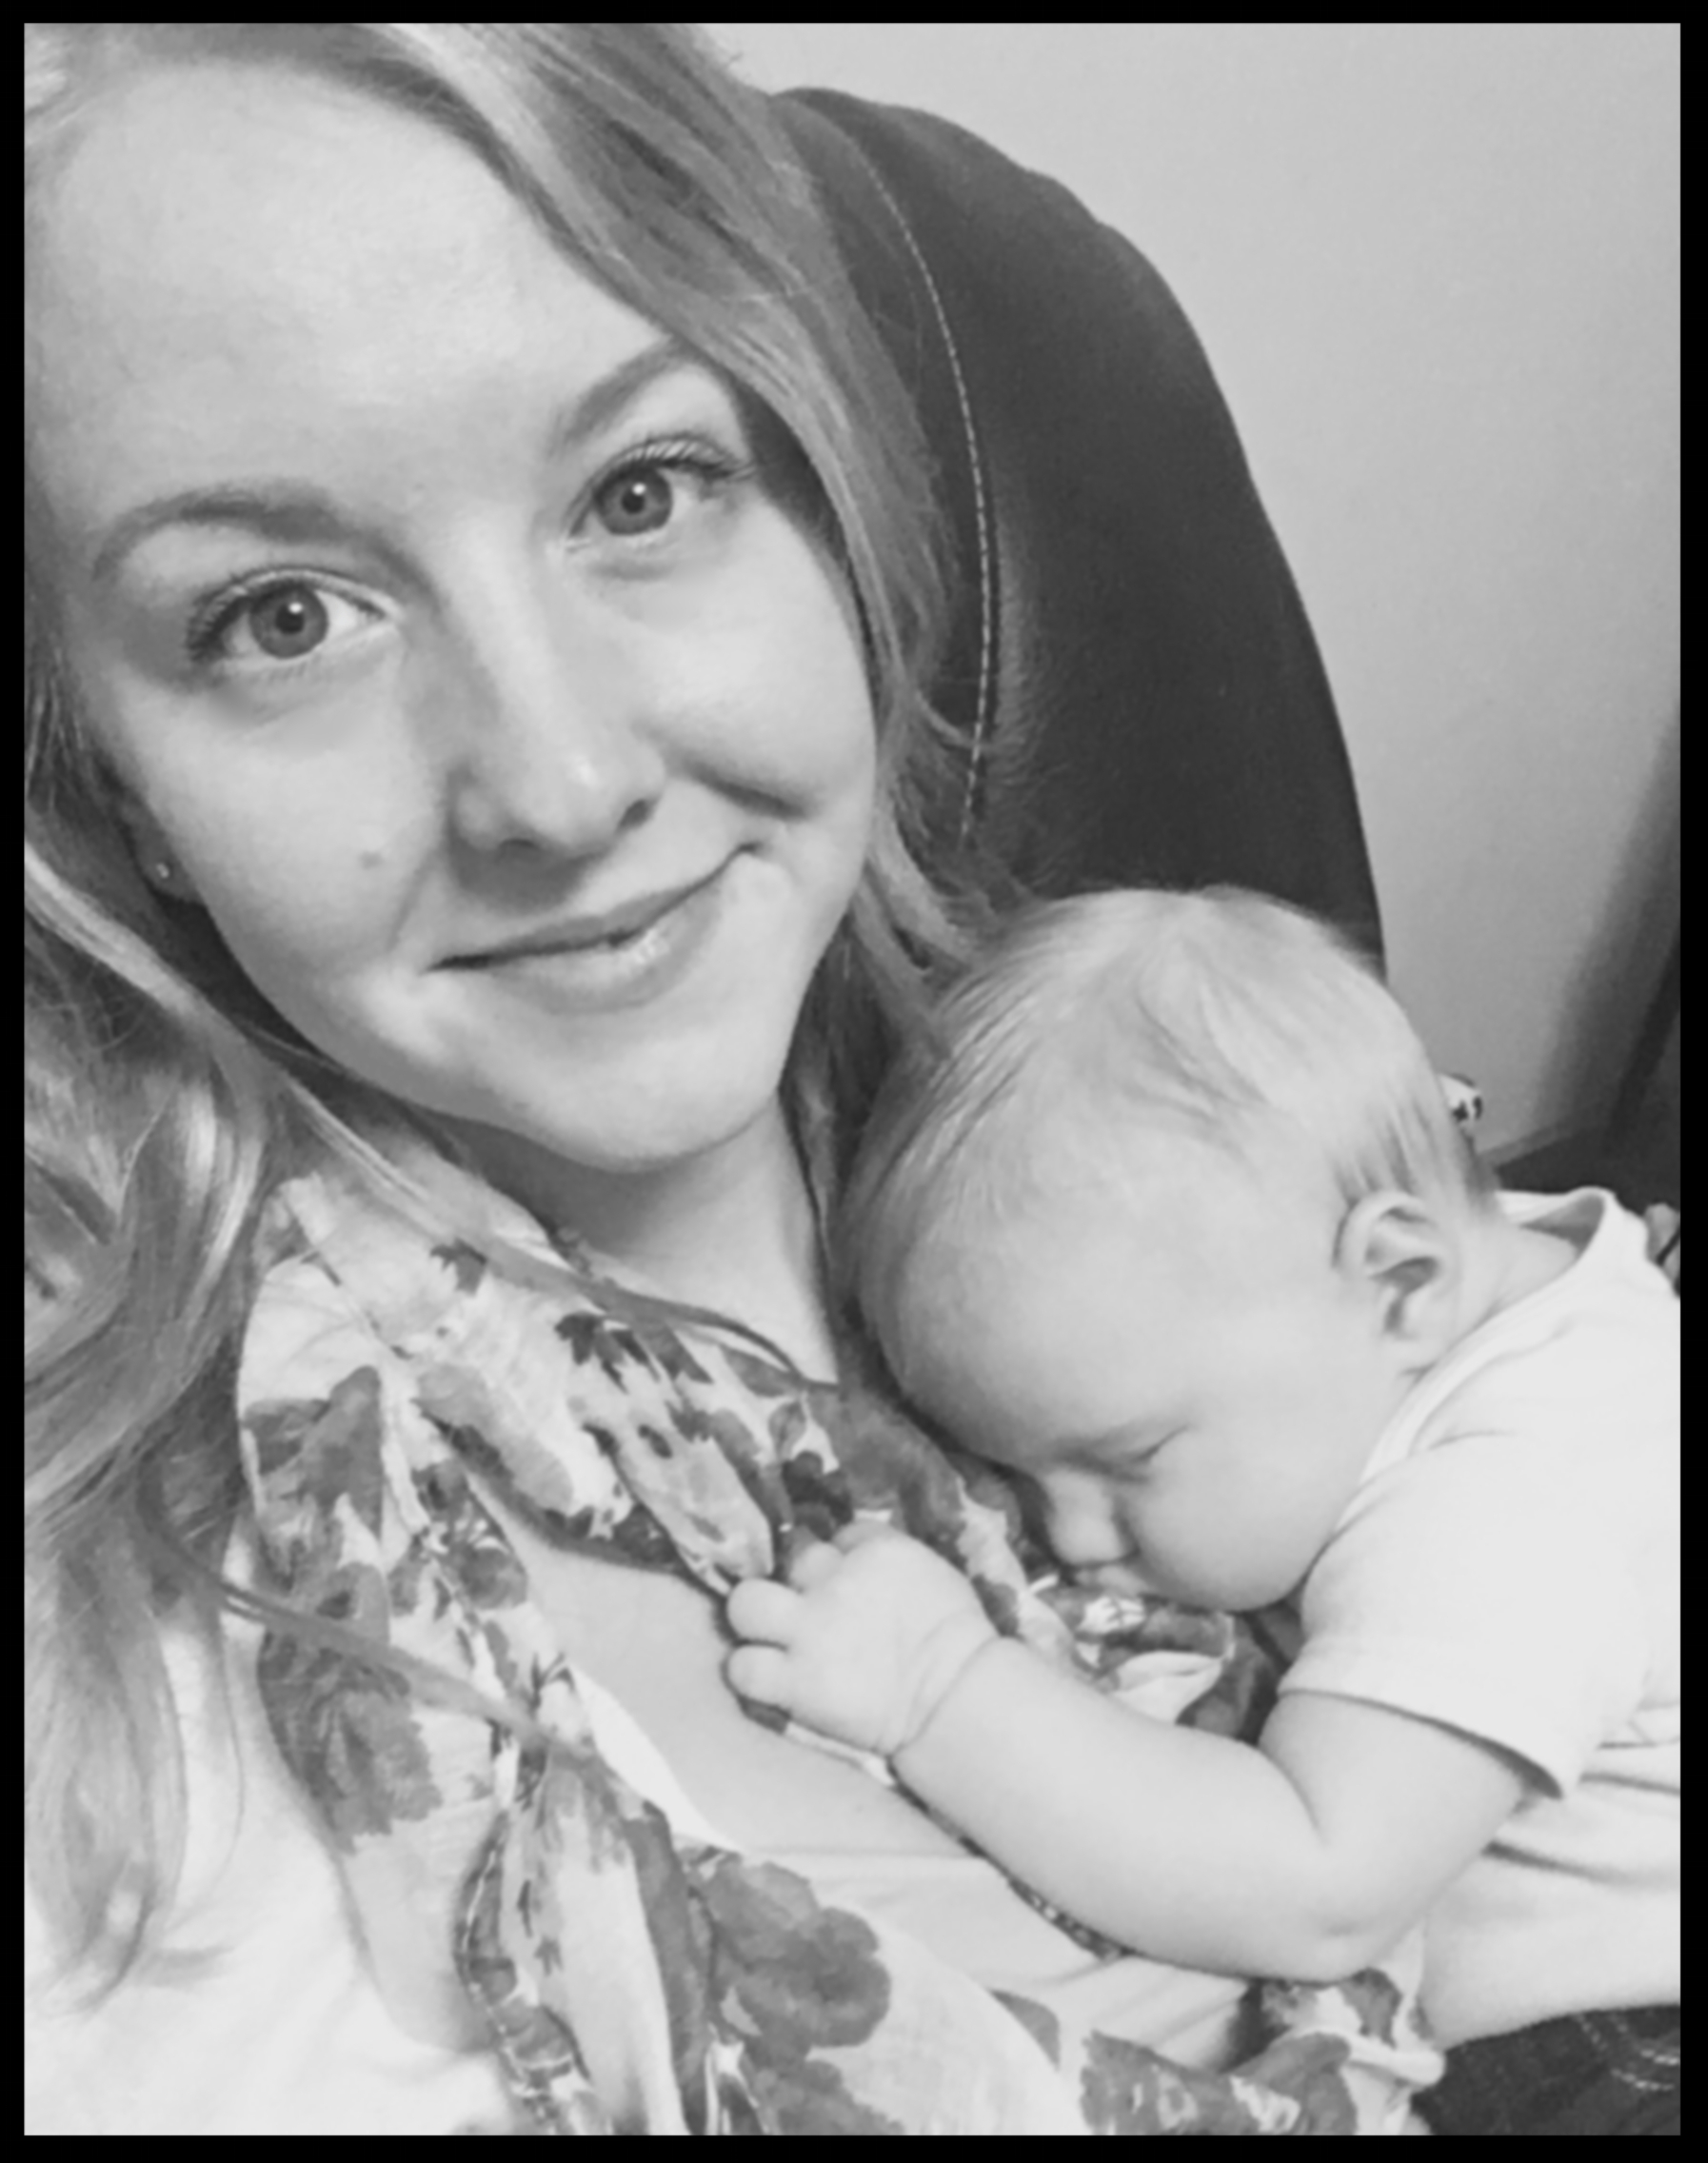 Natalie Joyner, Doula - It is a huge honor to be selected as a client's doula. Your comfort is my top priority. Here is some information about myself so we can become better acquainted!